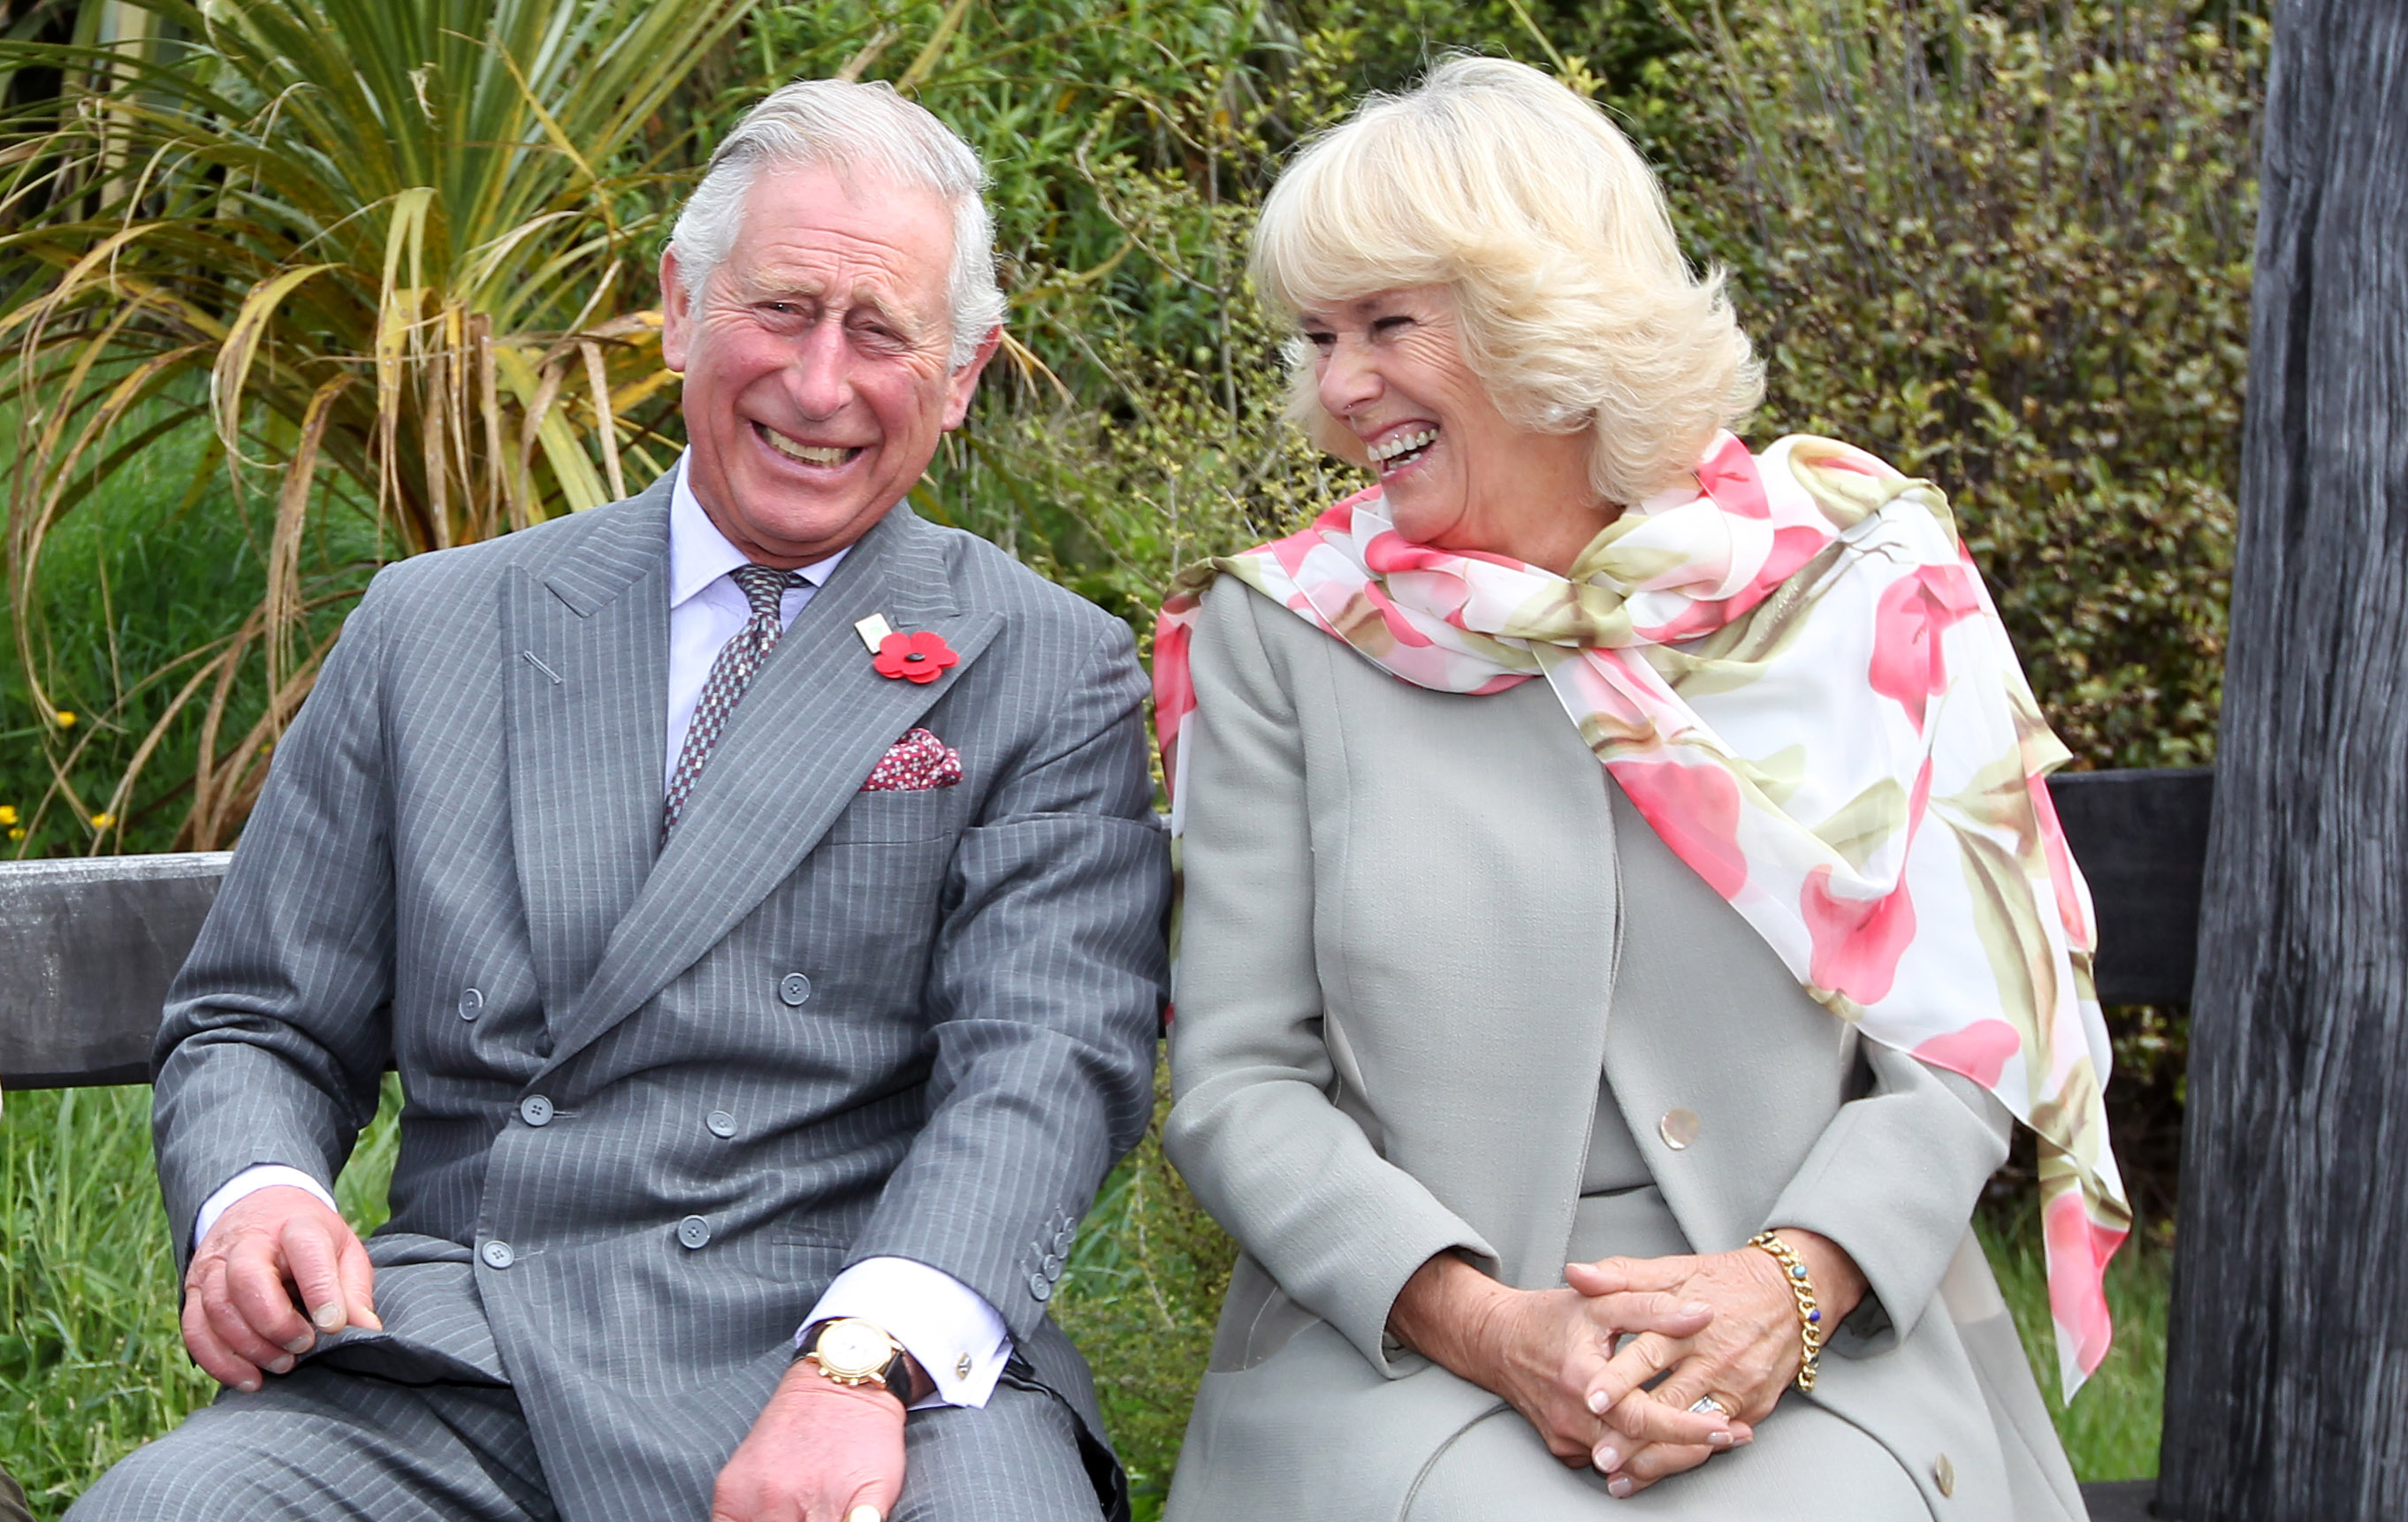 The Prince Of Wales & Duchess Of Cornwall Visit New Zealand - Day 2